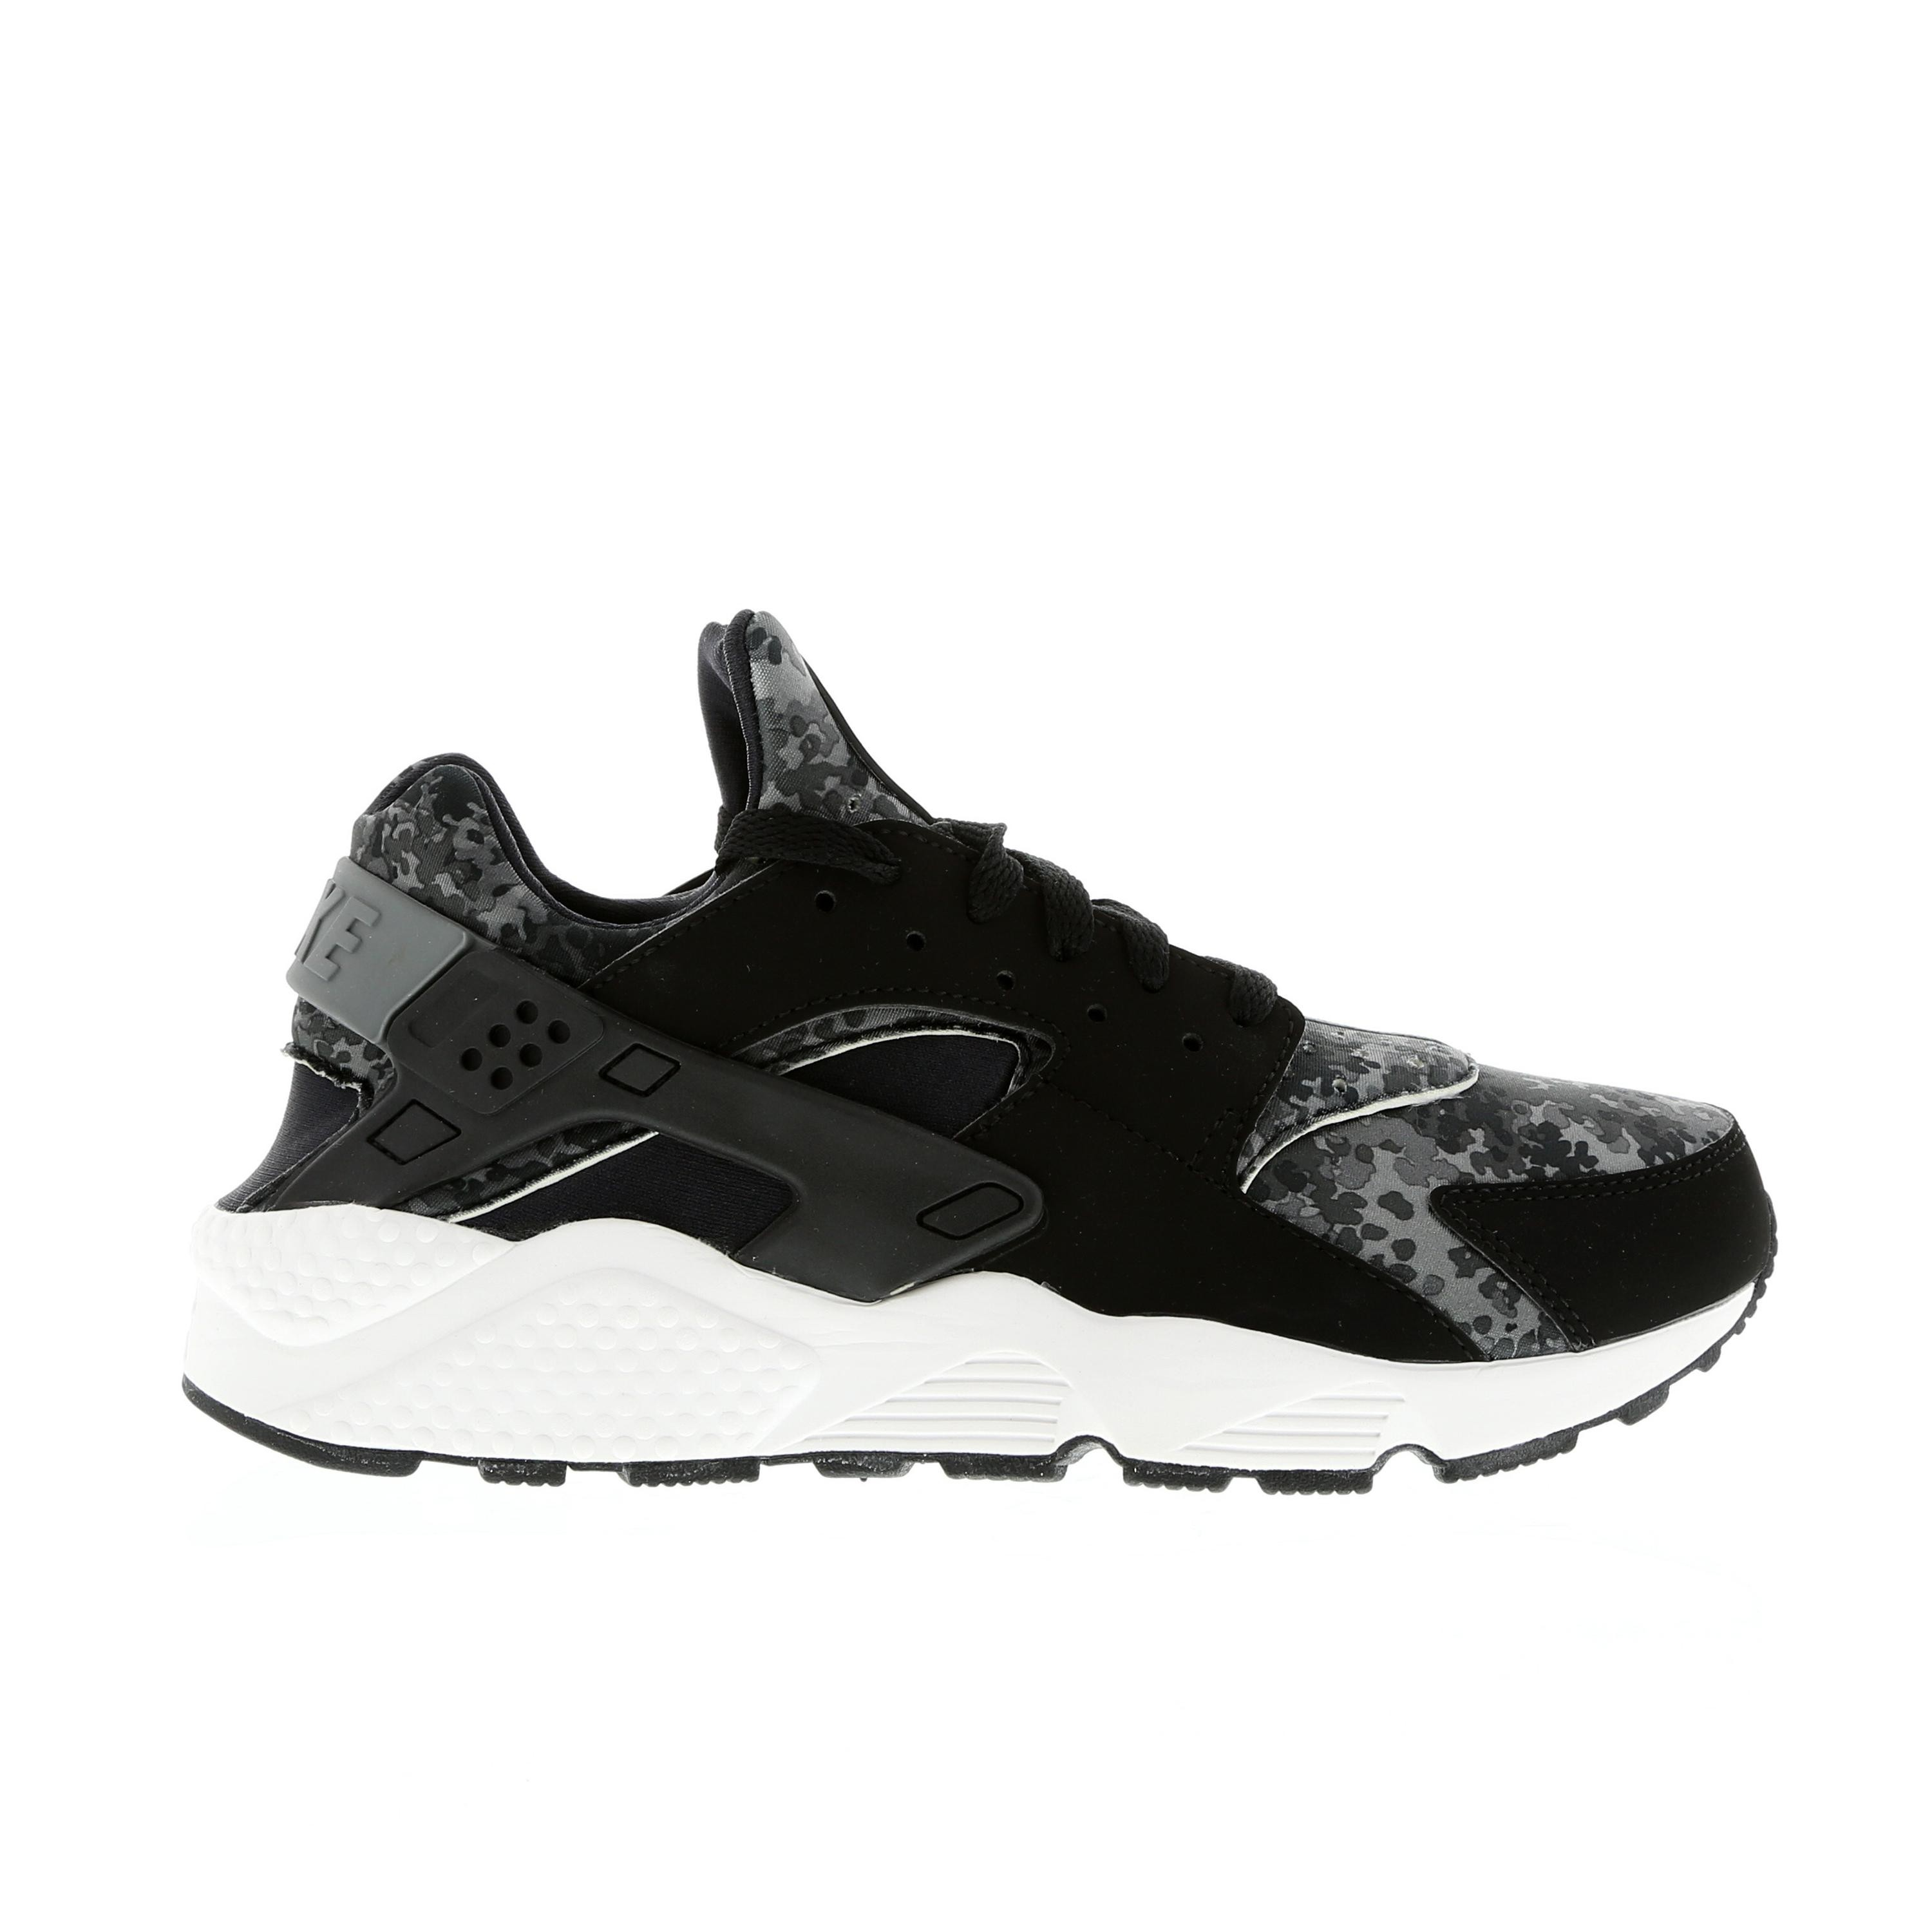 Nike Air Huarache Camo 318429-015 Black/Grey/Green Mens Shoes